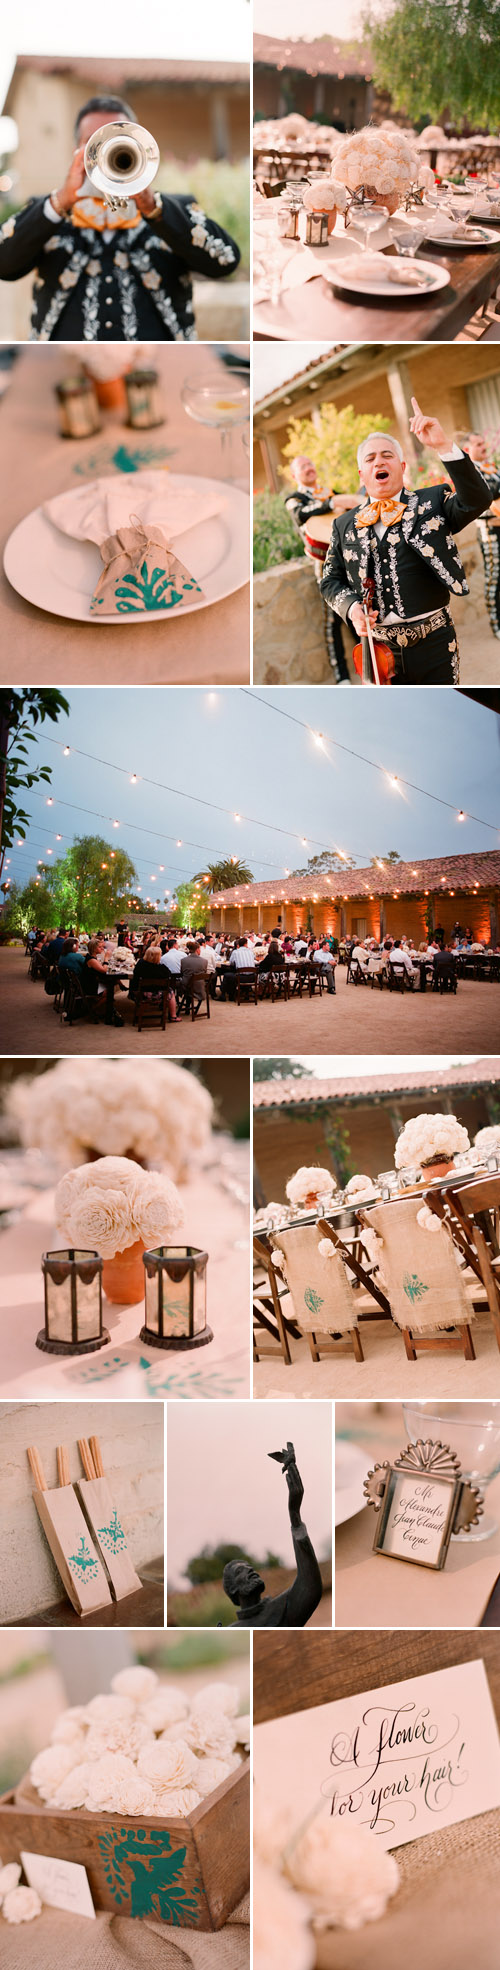 stylish mexican inspired real wedding rehearsal dinner, images by Beaux Arts Photographie